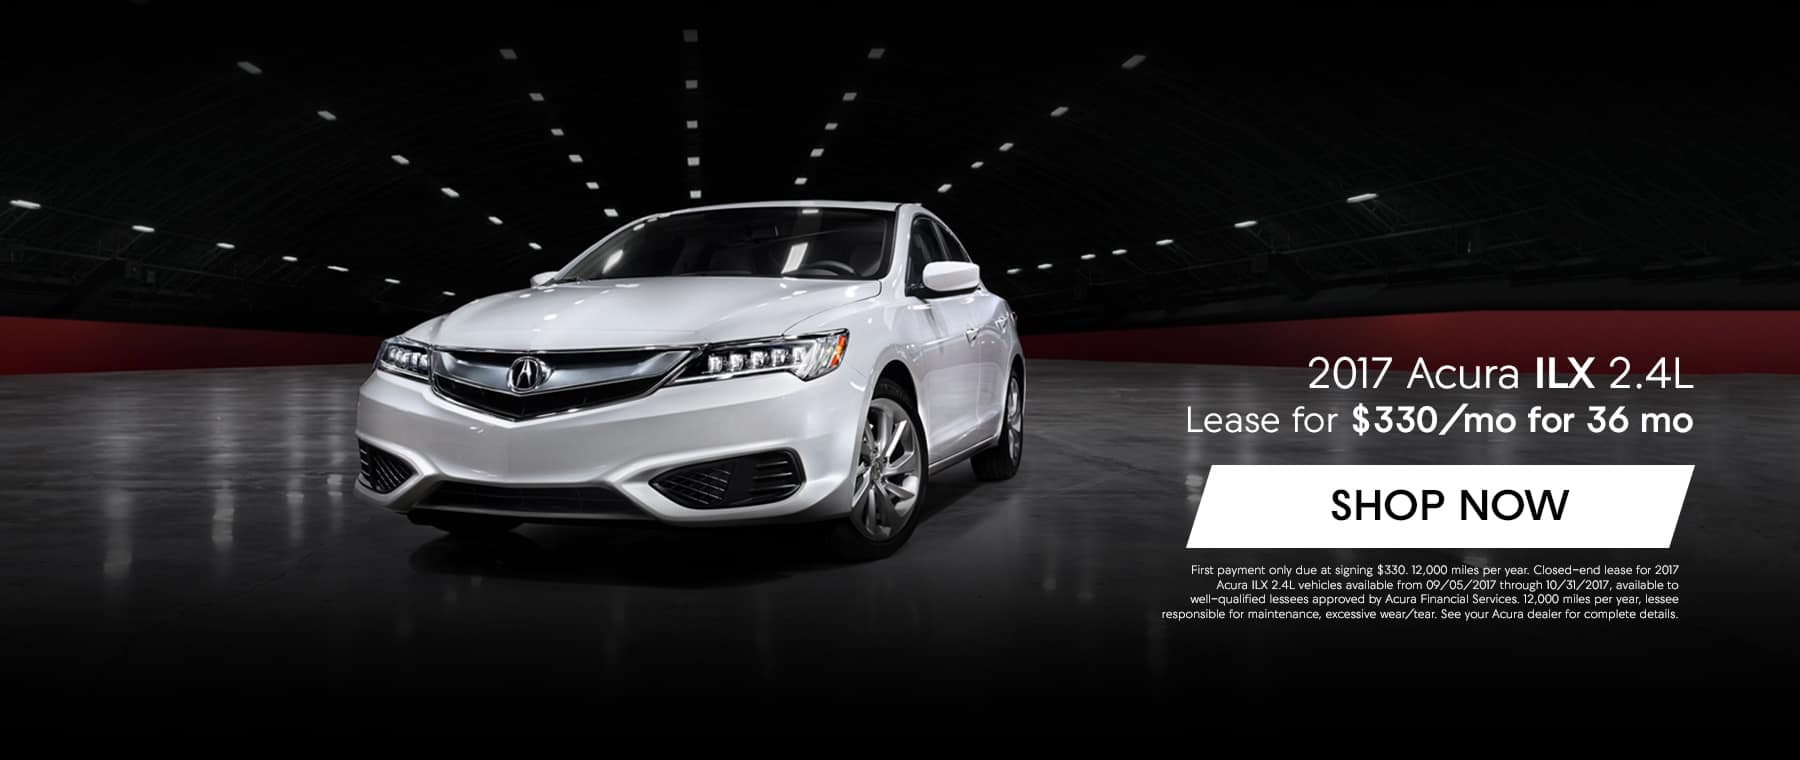 2017 ILX Offer